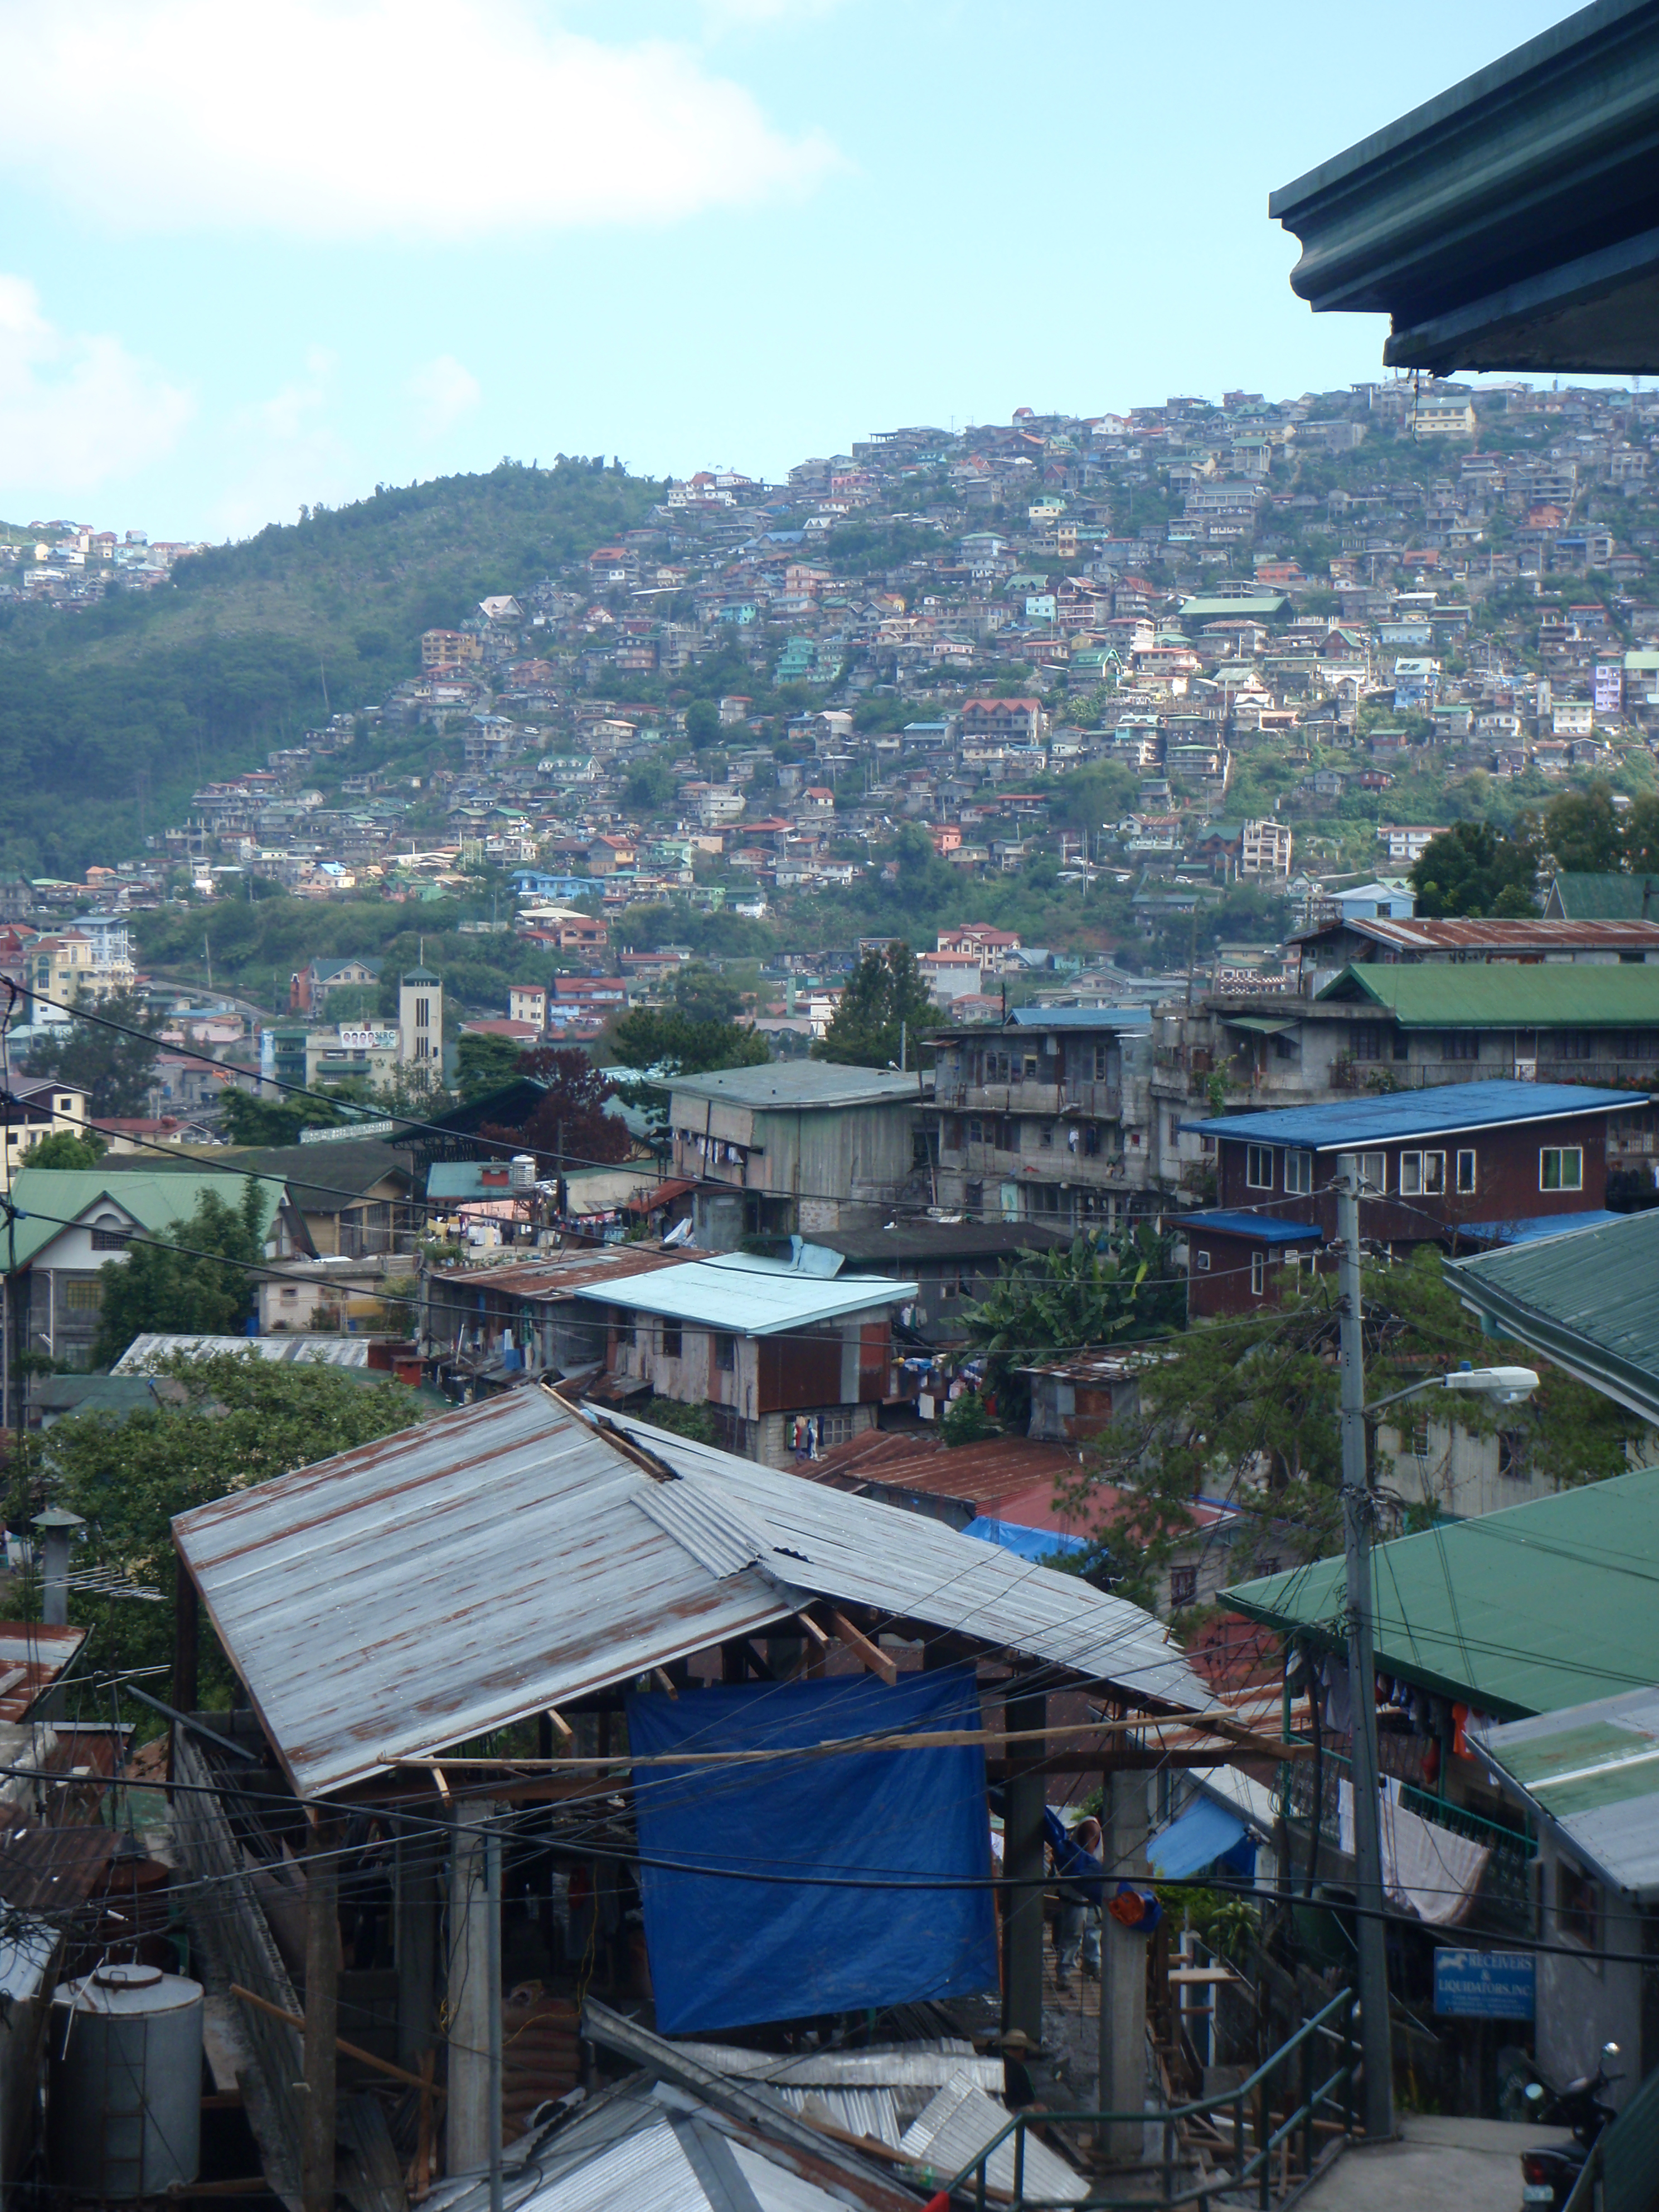 Baguio is a vibrant city in the northern Philippines. Its 1,500 metre altitude means a cool climate and scenic views. Photo by Rowena Harbridge for AusAID